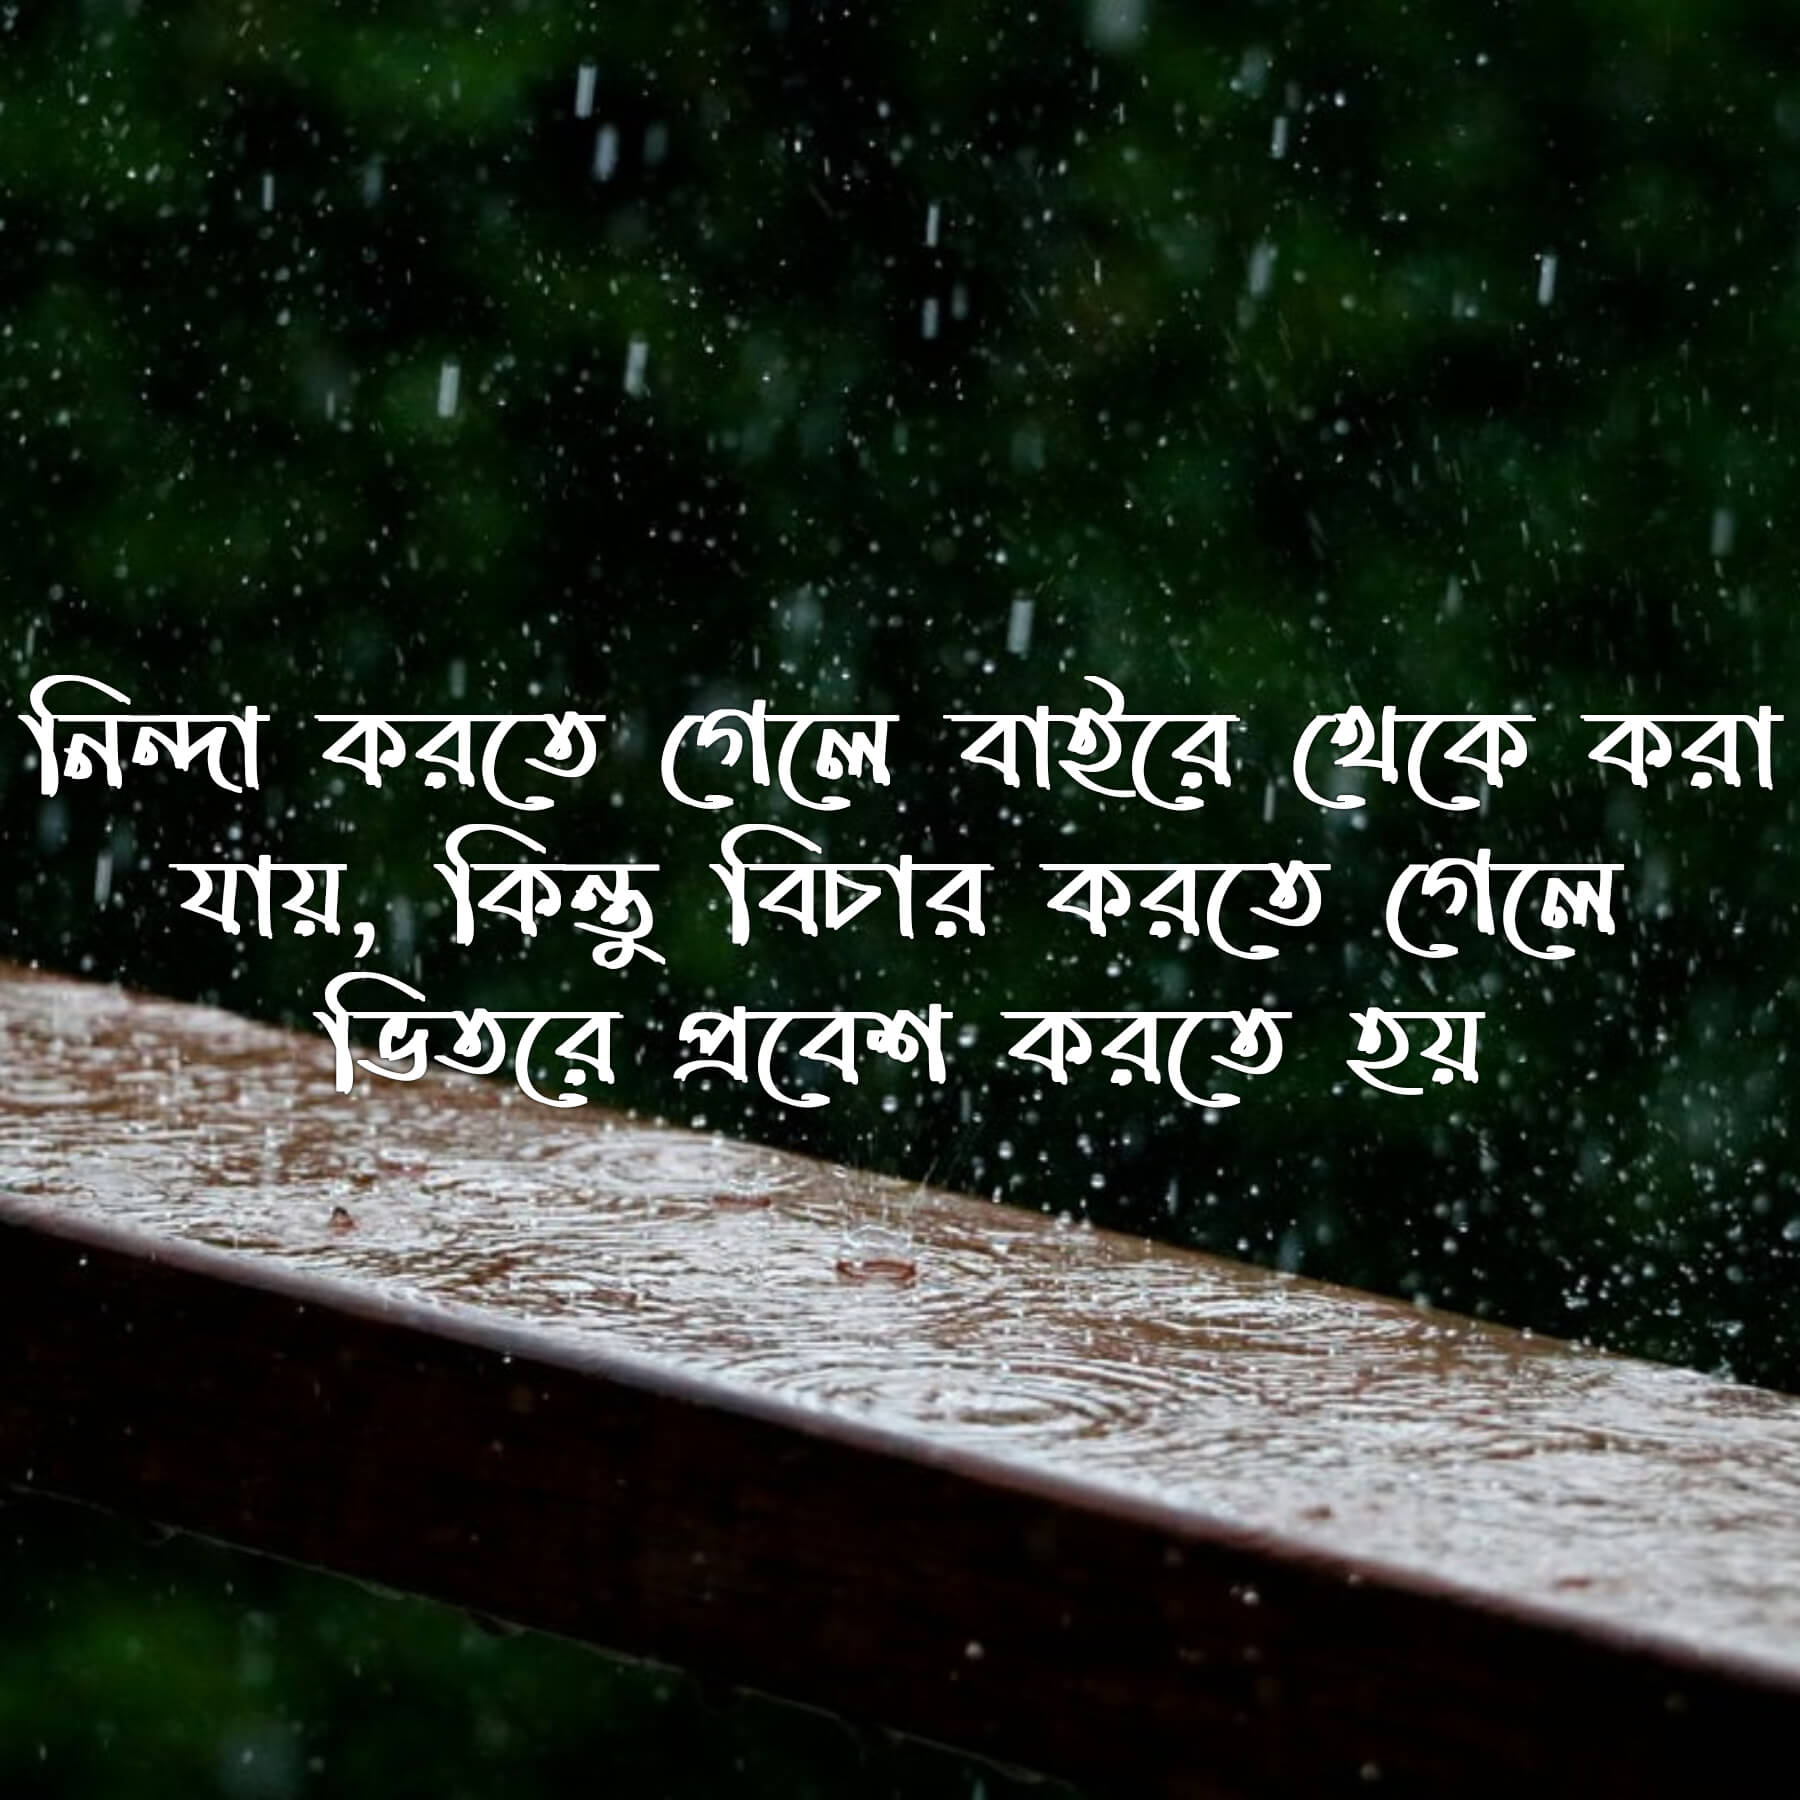 tagore-famous-bengali-writings-lines--bongquotes